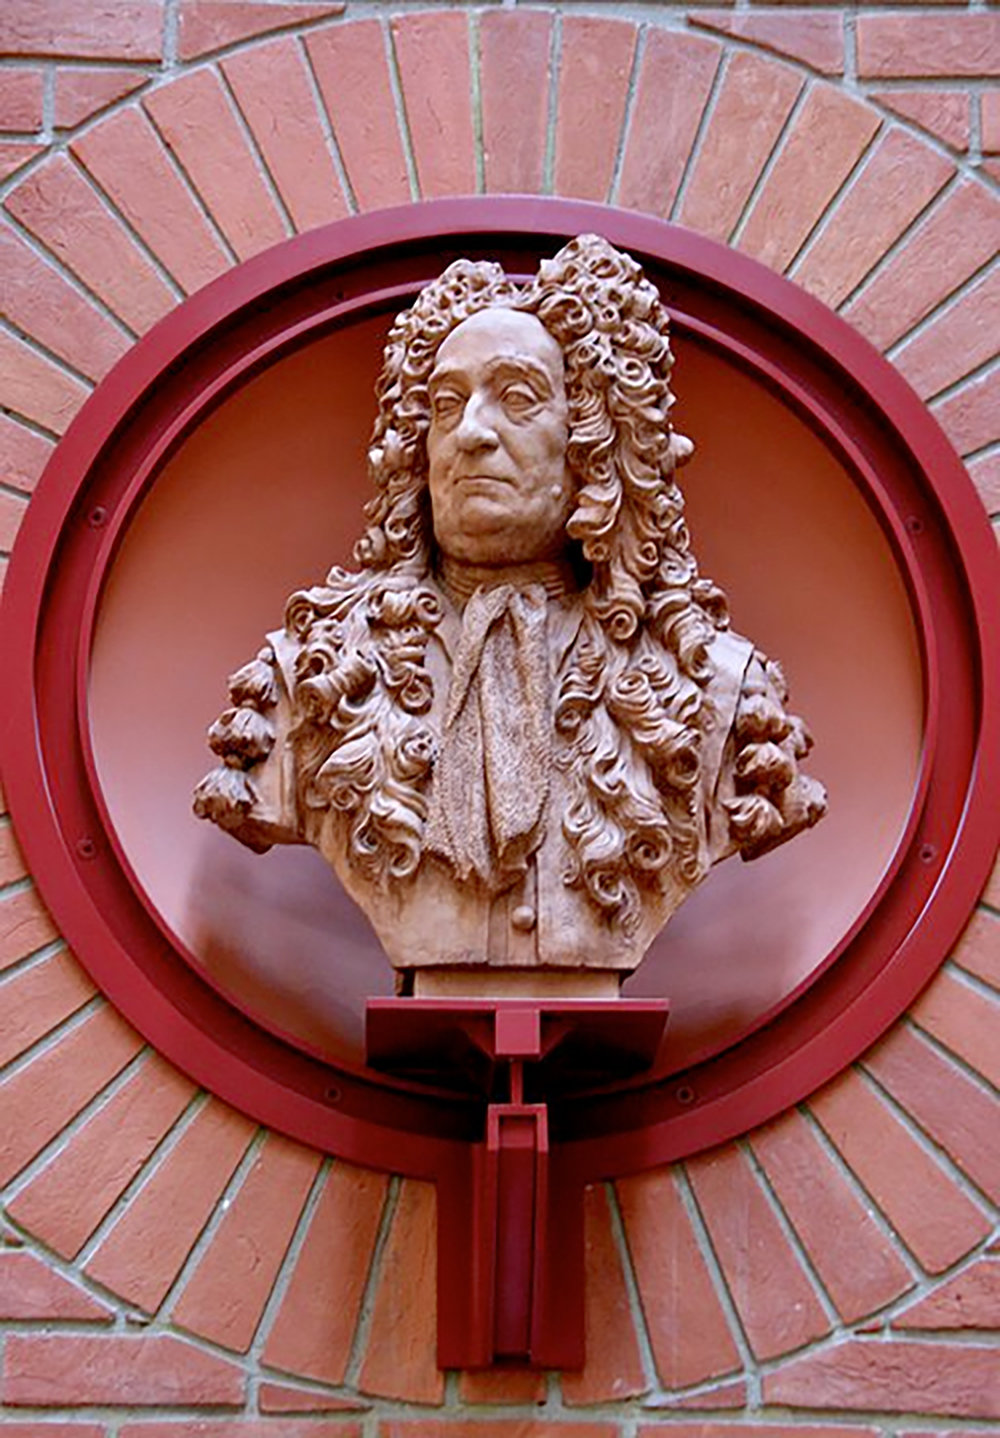 Figure 2: Bust of Sir Hans Sloane (1660-1753) in the British Library.